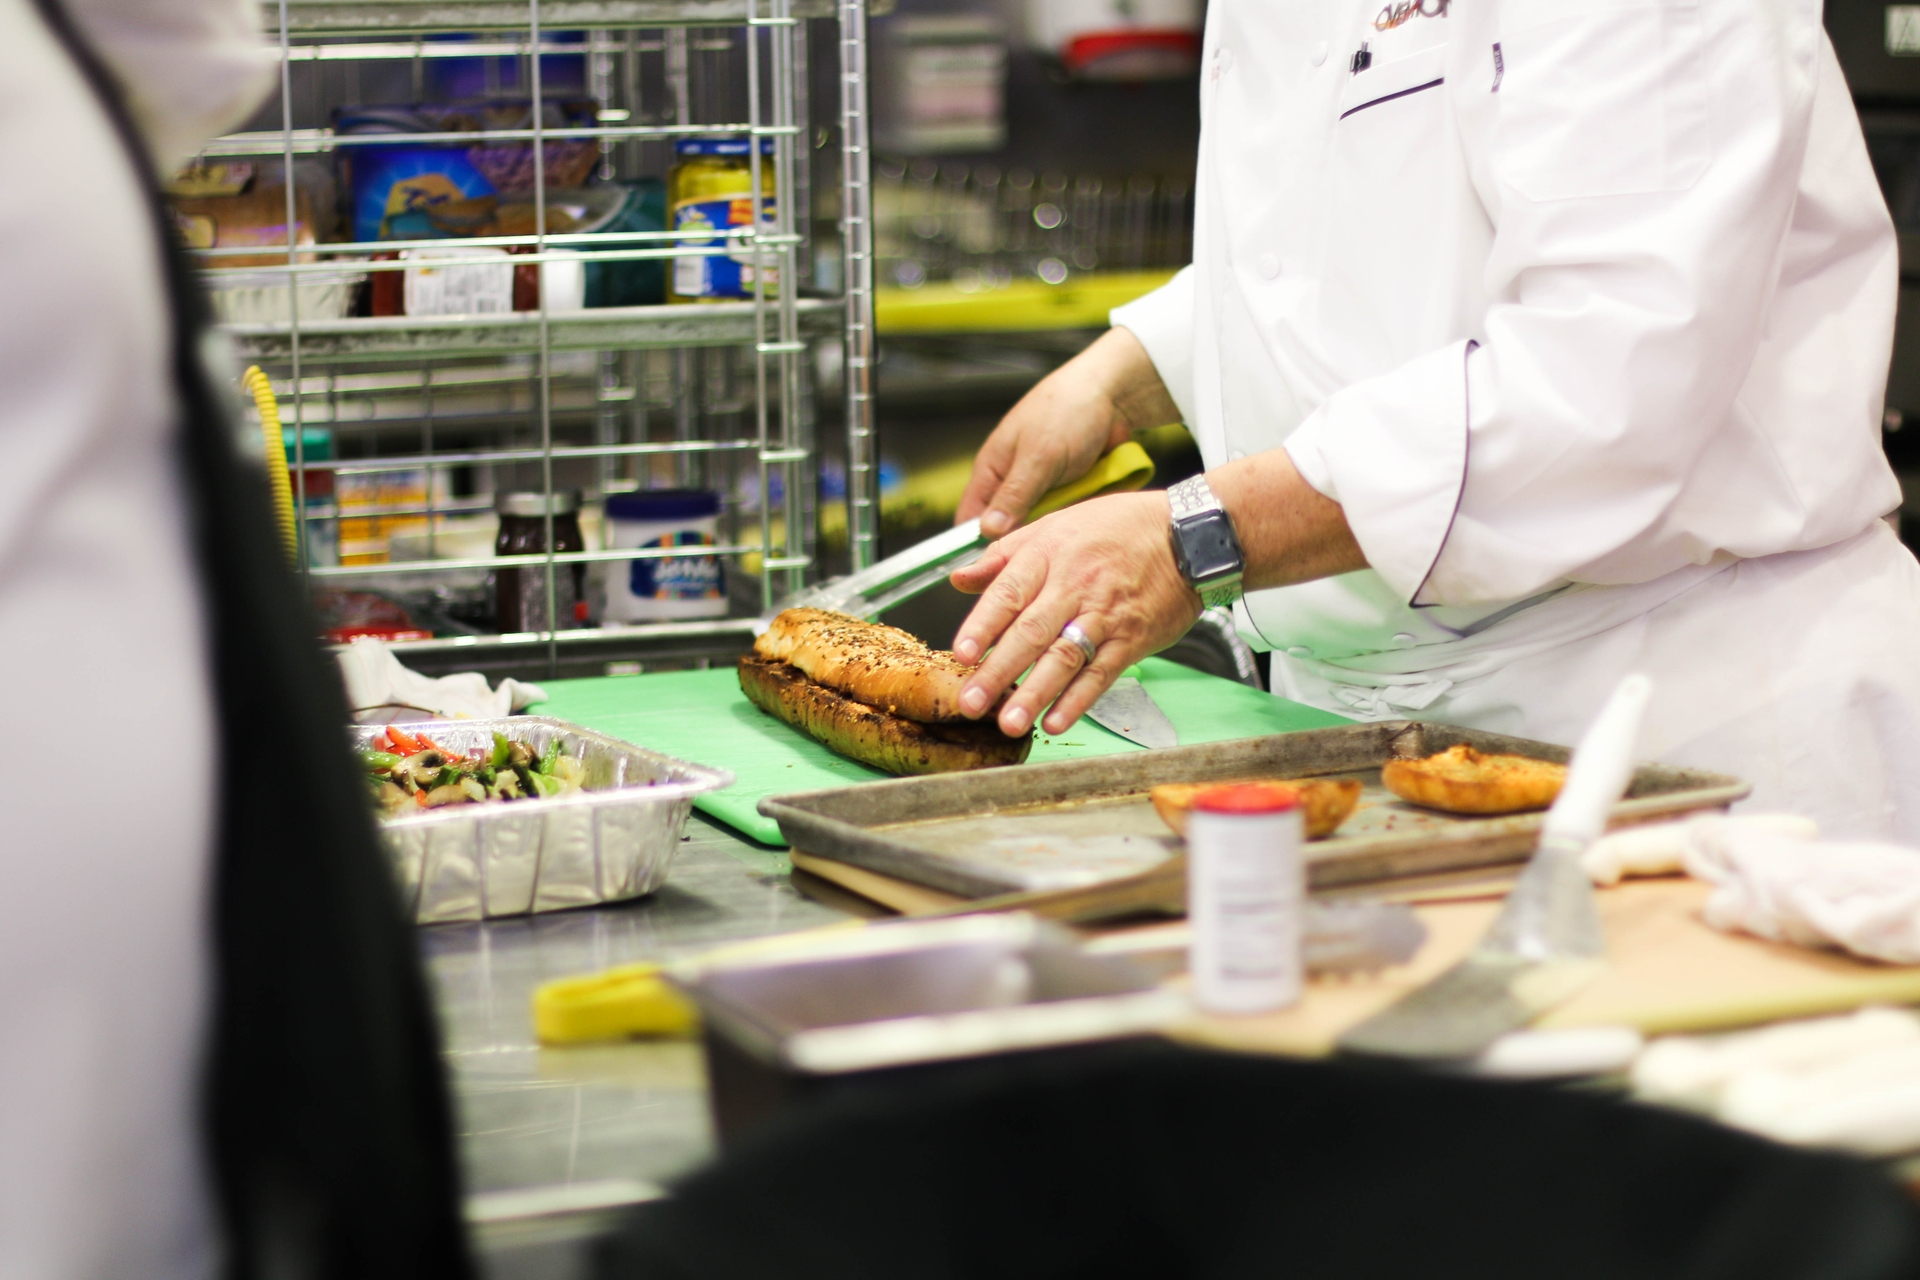 Chef Don Ocheltree prepares toasted pizza bread to show how an energy efficient convection oven with infrared heat cooks.